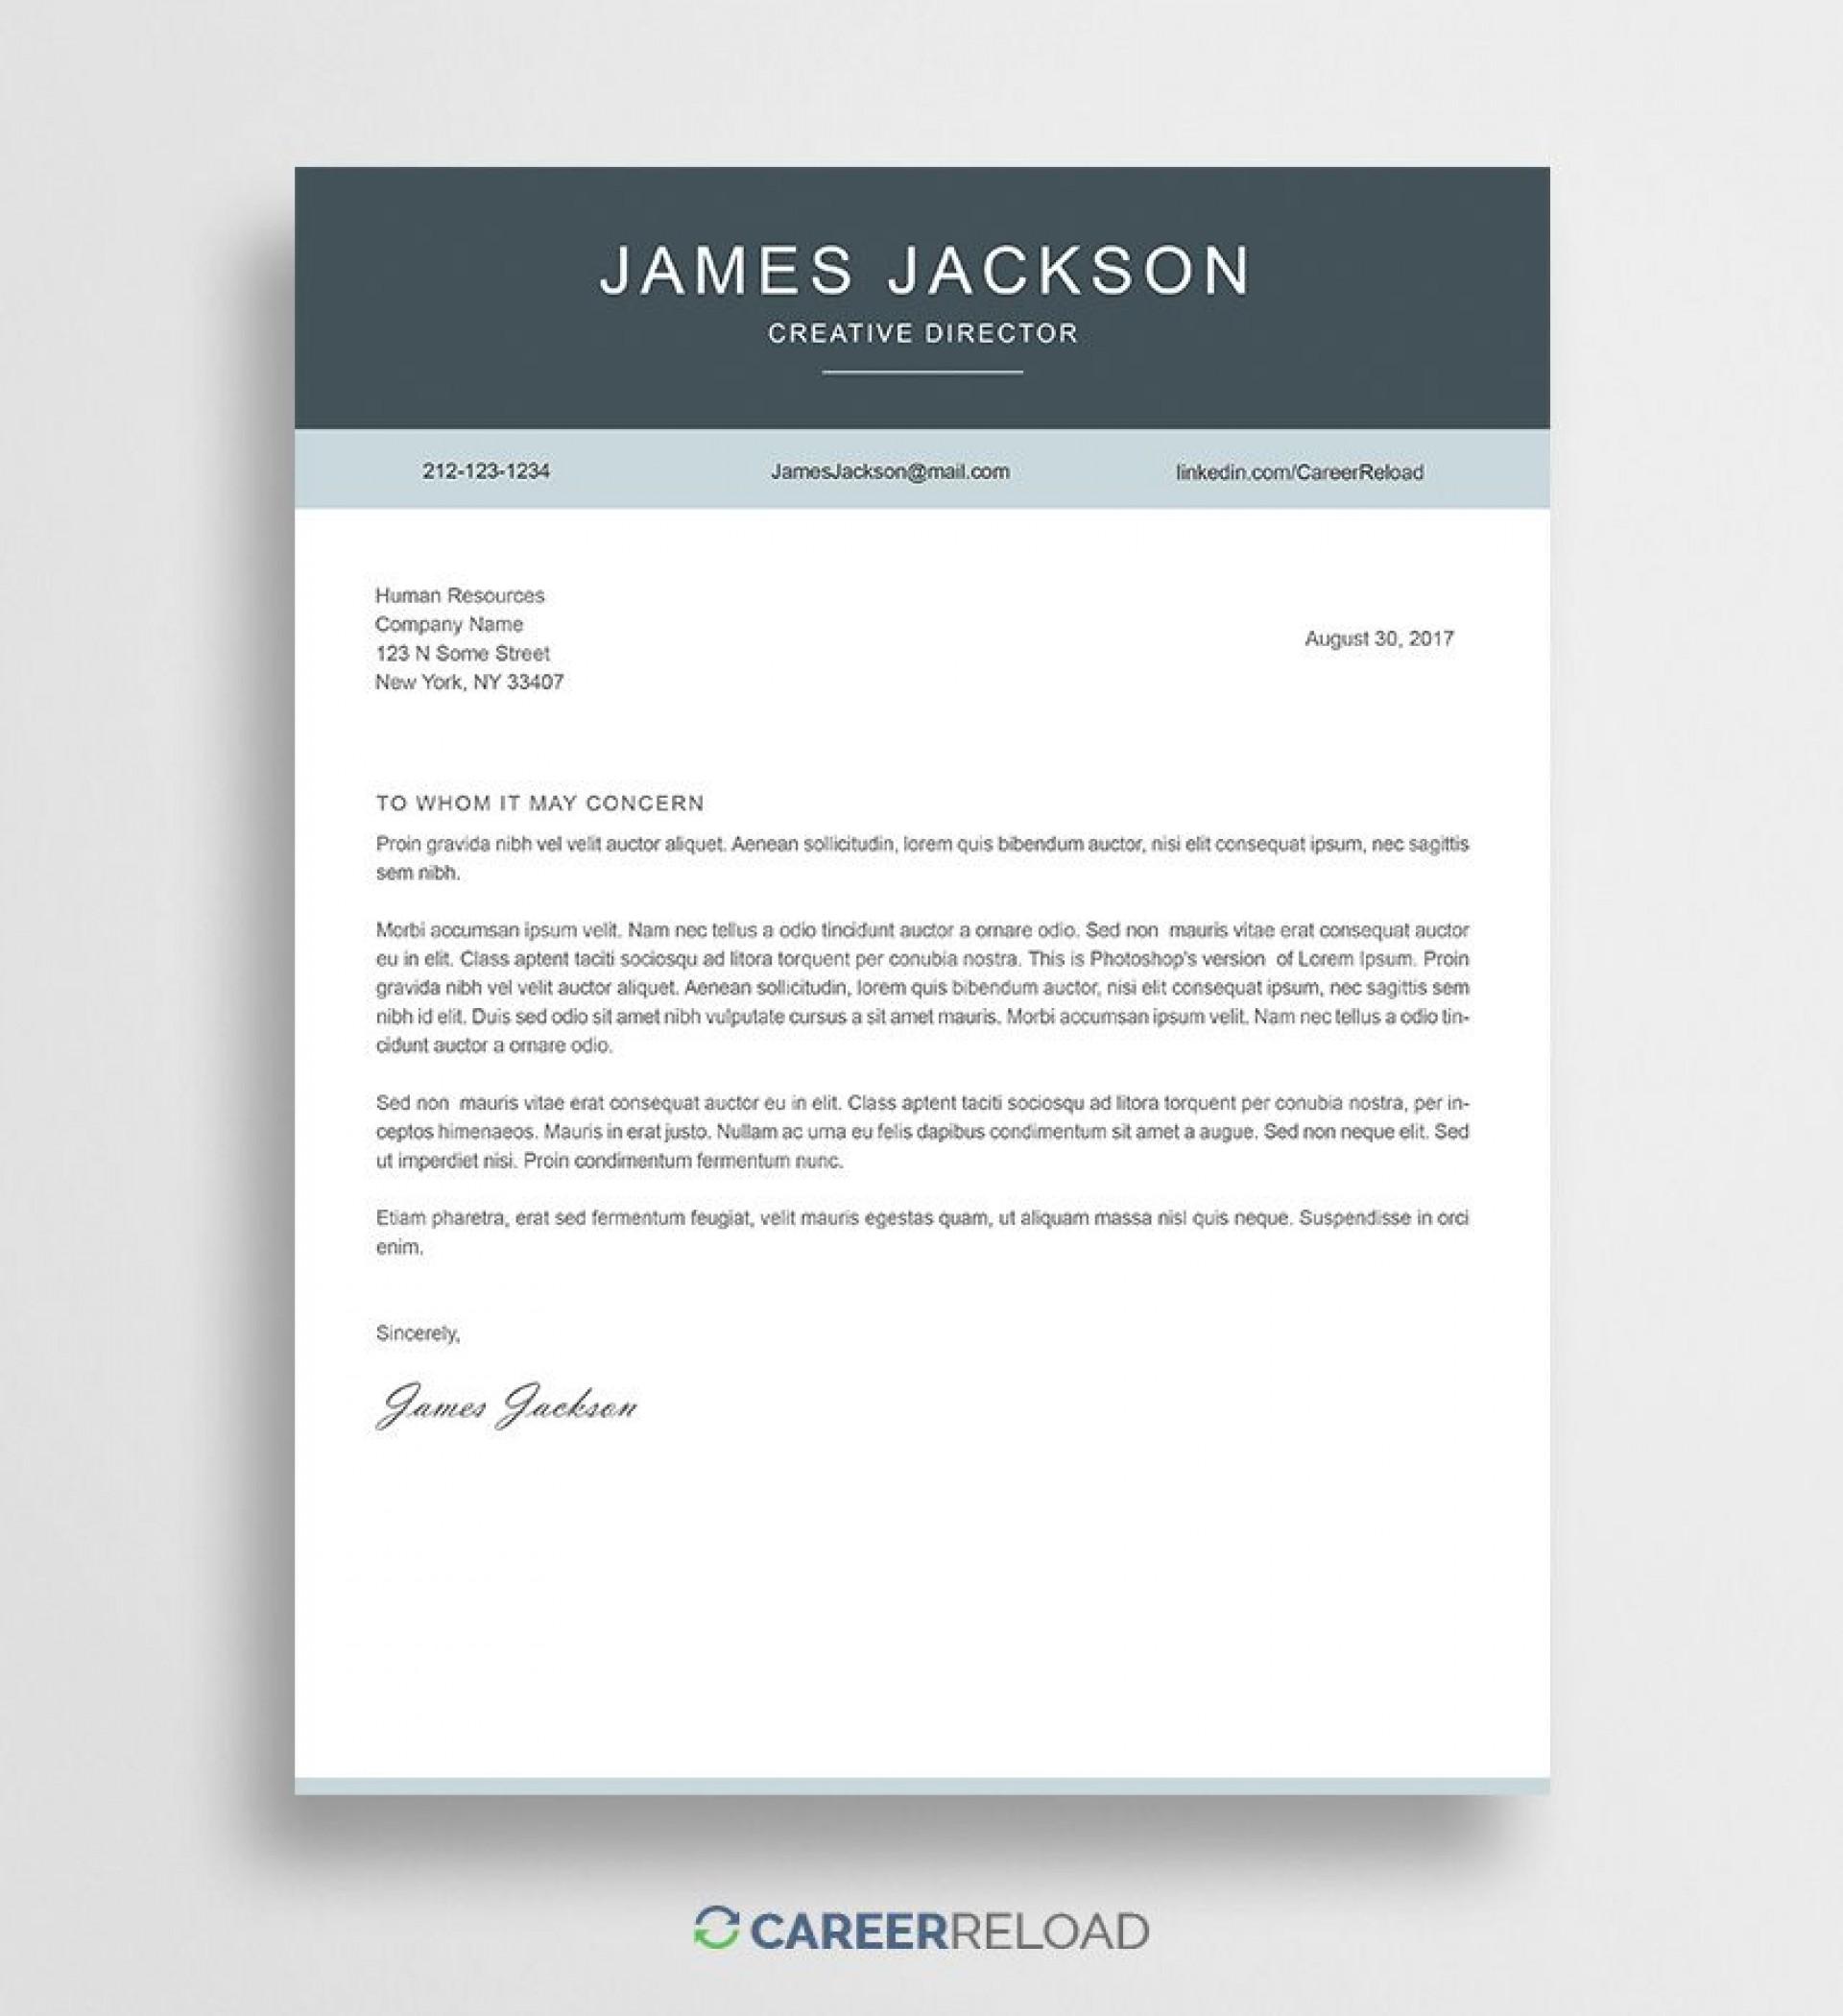 003 Magnificent Free Download Cv Cover Letter Template Highest Clarity  Templates1920